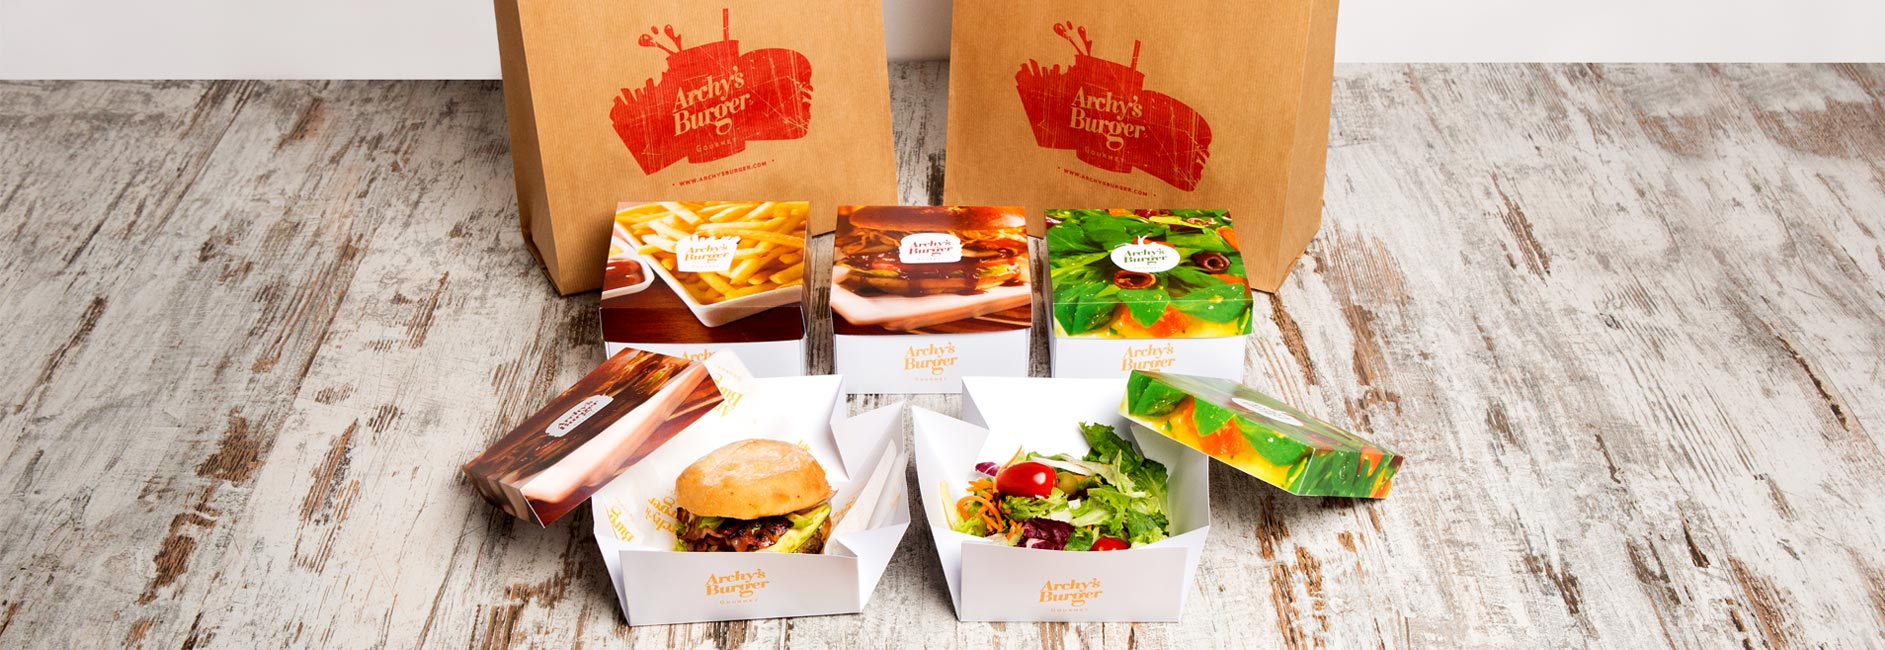 Packaging_archys_burger